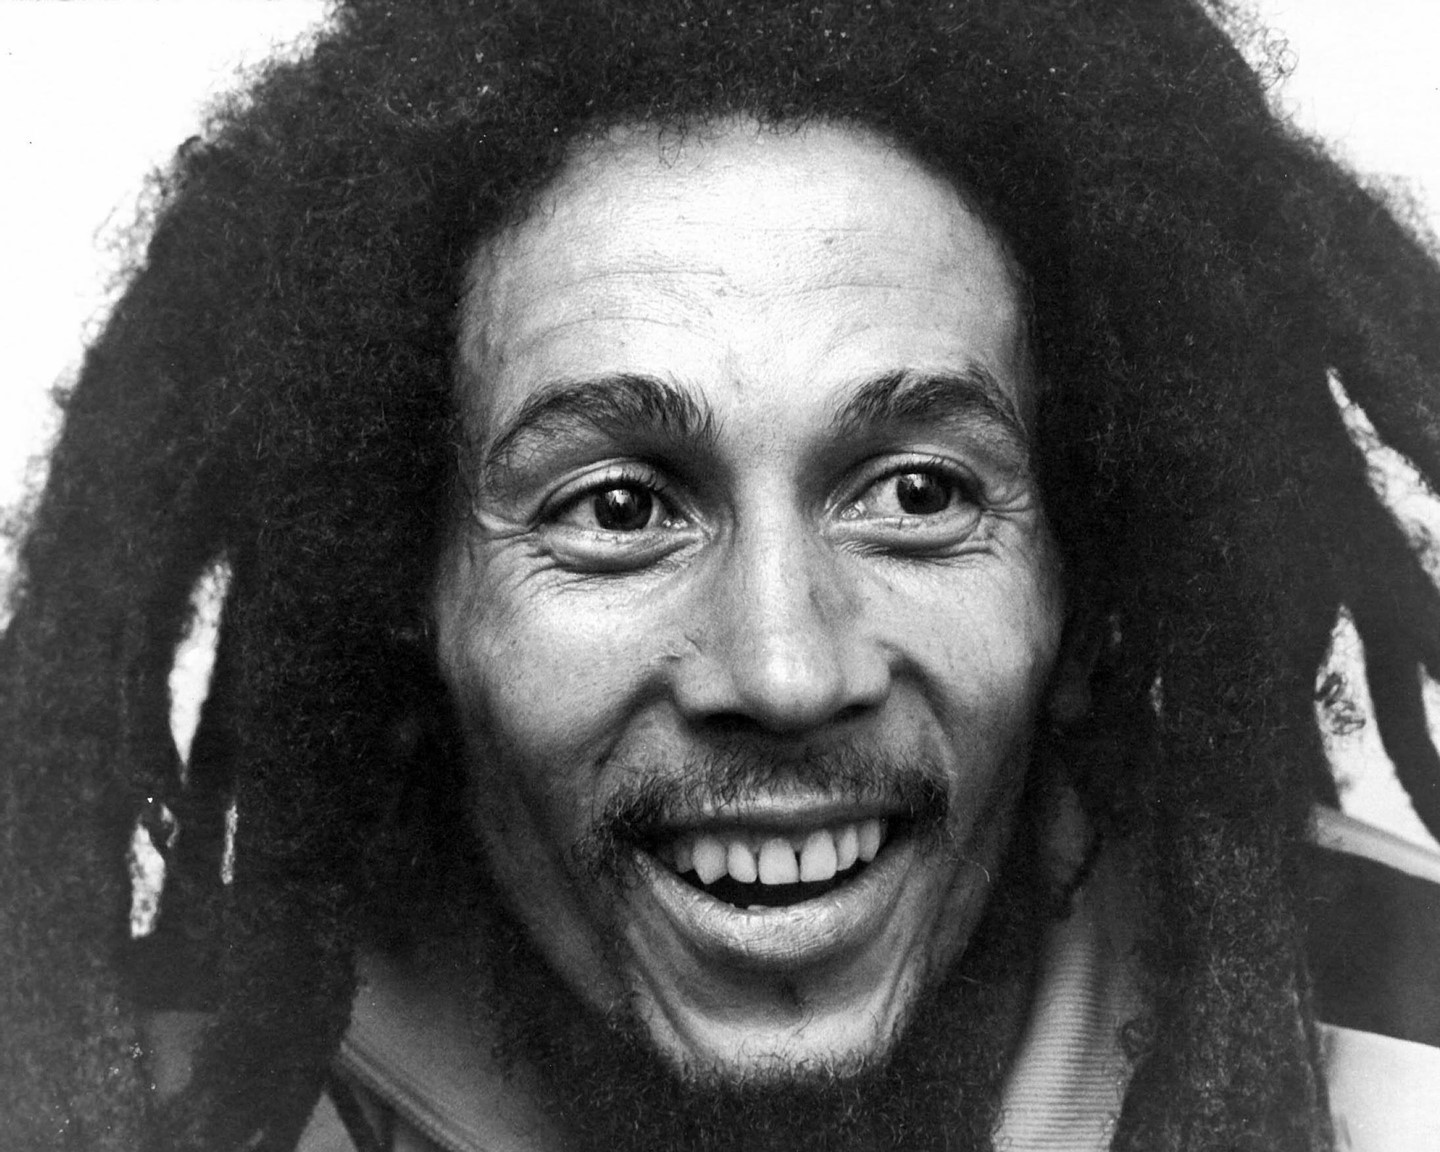 Today is the anniversary of the death of Bob Marley, who passed at age 36 after leaving an indelible mark on the world's musical and spiritual landscapes. He is photographed here by Allan Tannenbaum @soho_blues.   © Allan Tannenbaum